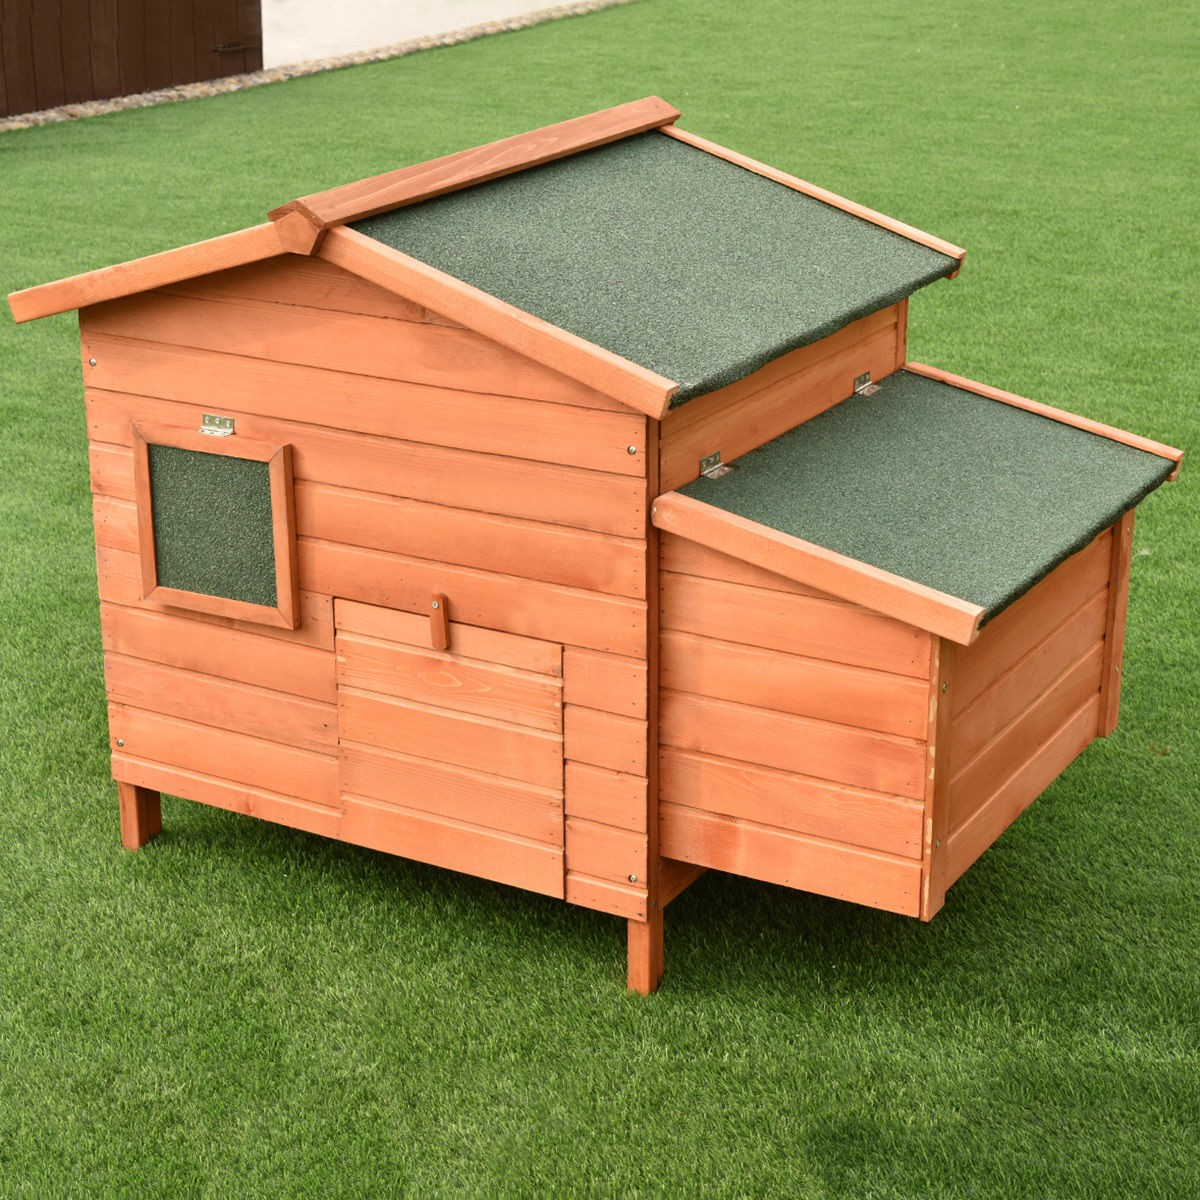 W 45 Wooden Rabbit Hutch Small Animal House Pet Rabbit Hens Furniture Wood Play Ebay